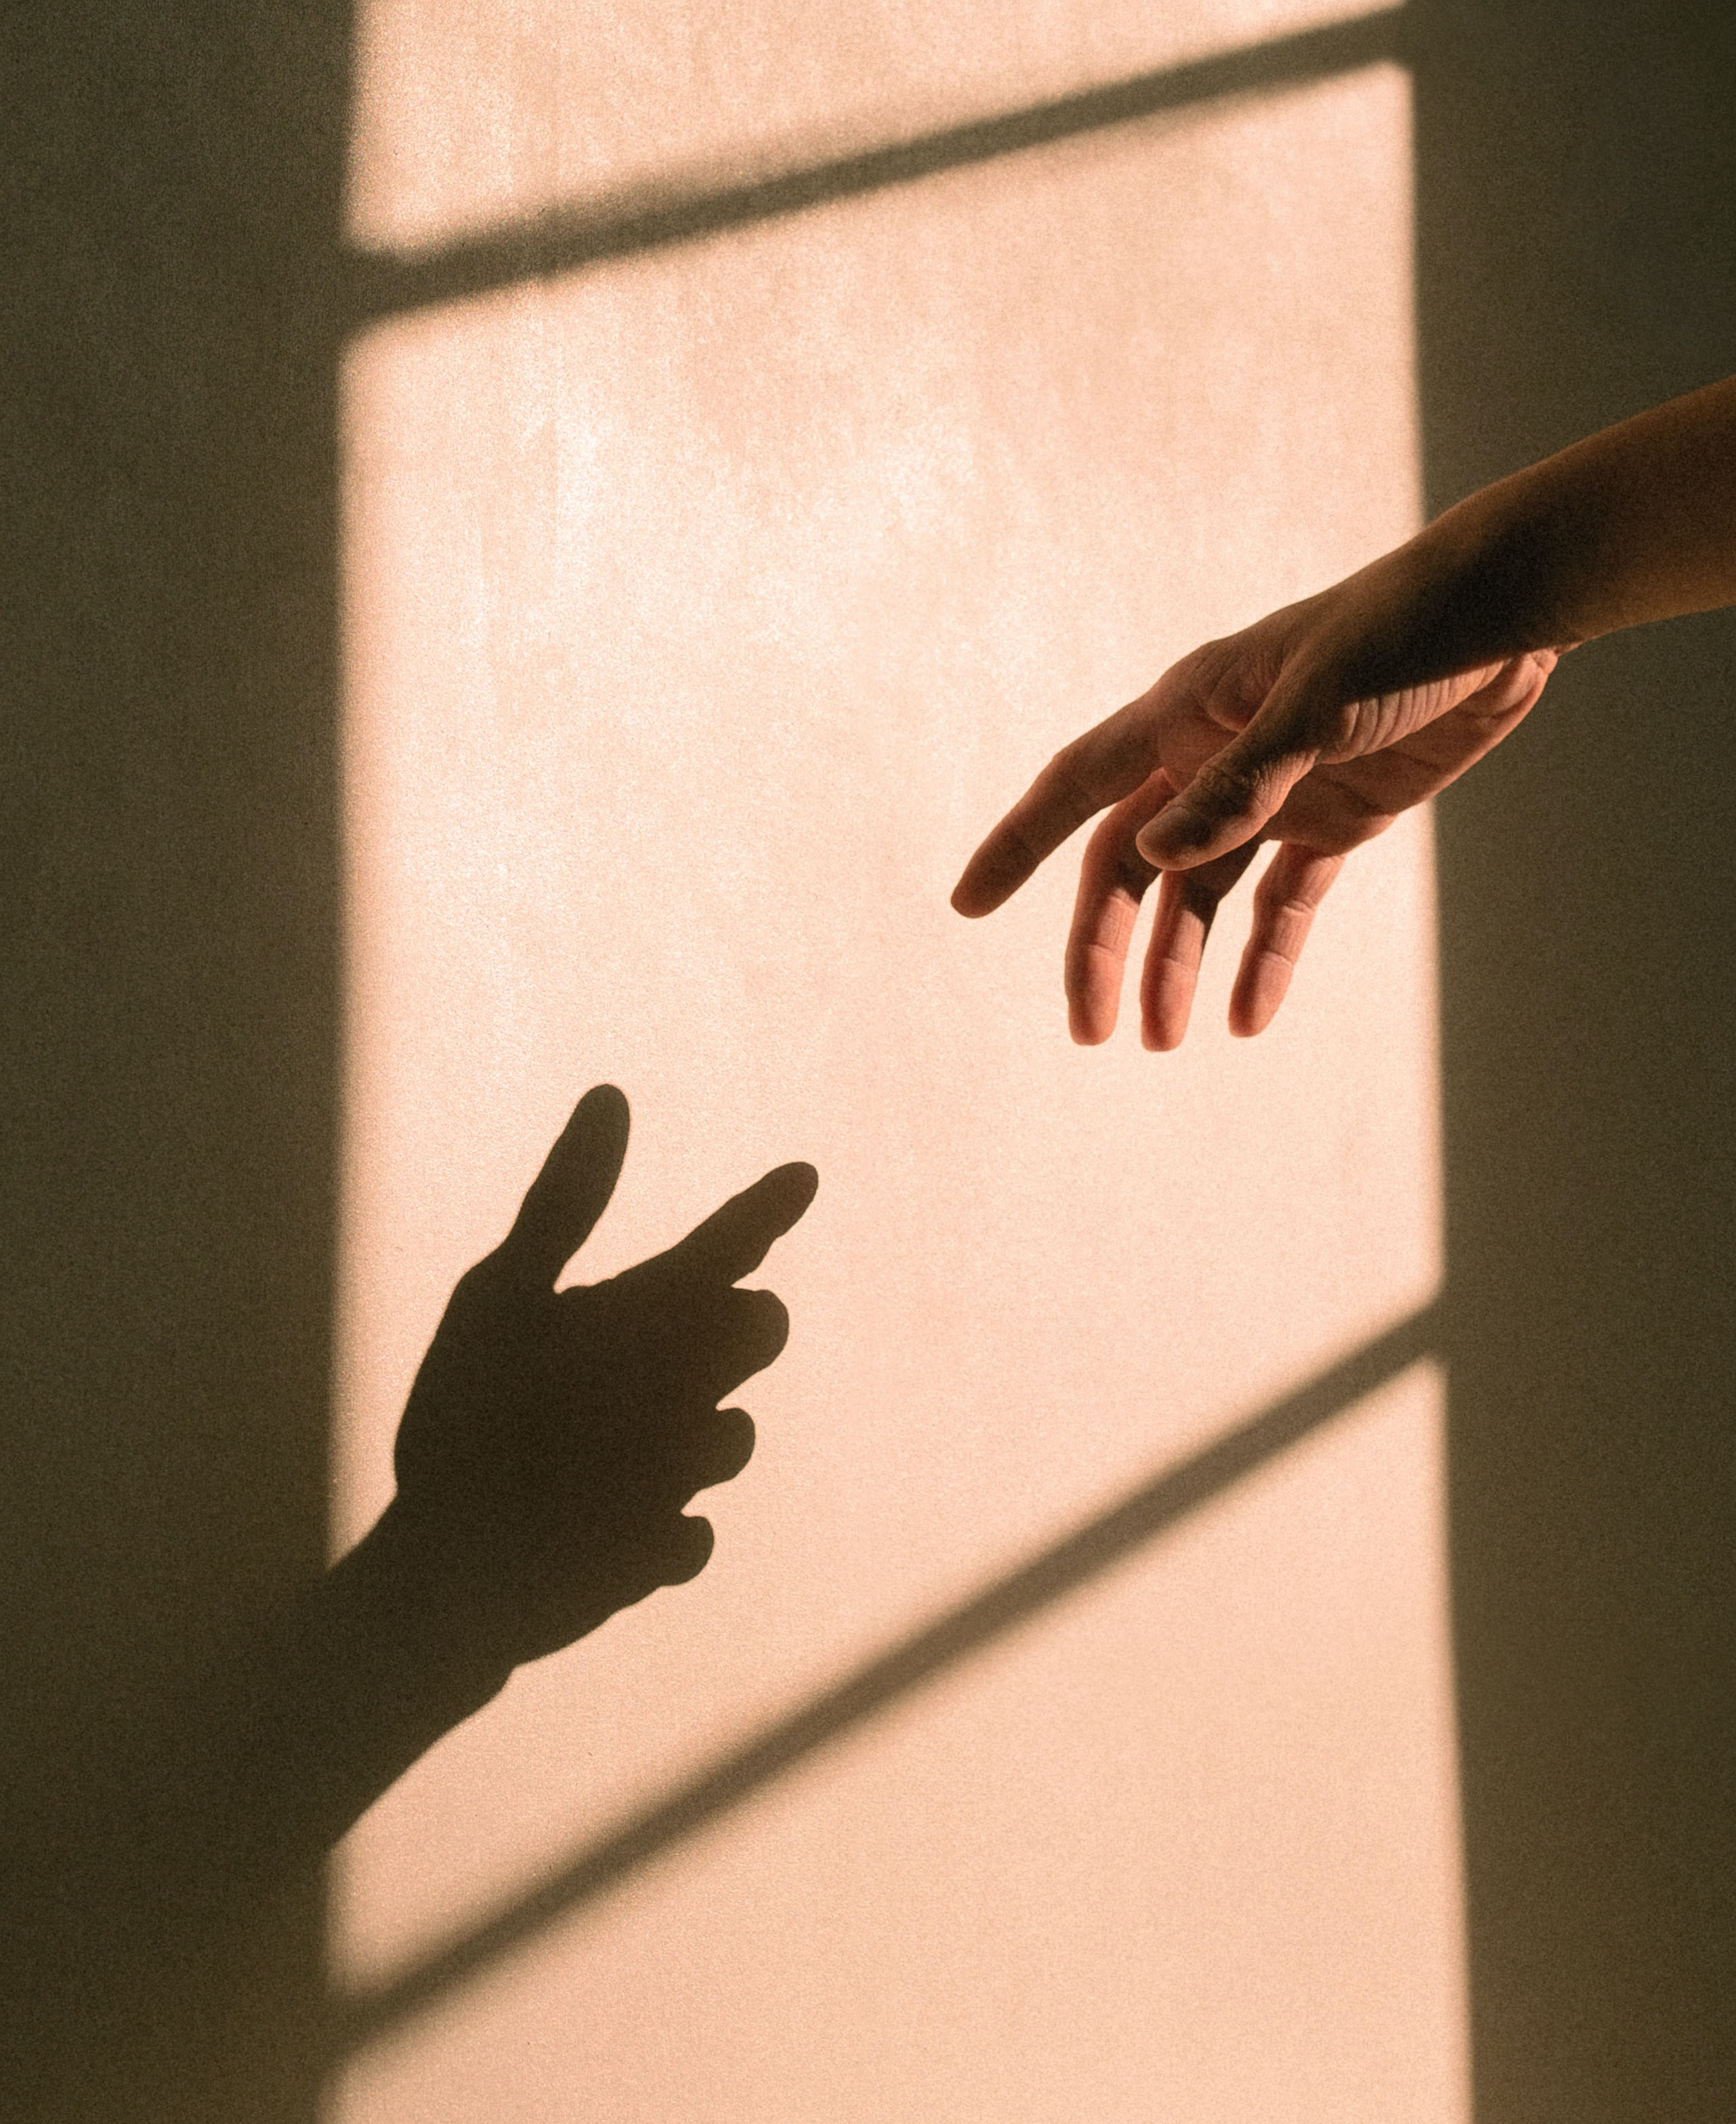 Photo of a hand in front of a sunlight wall, seemingly reaching for the shadowed hand their fleshy hand casts.